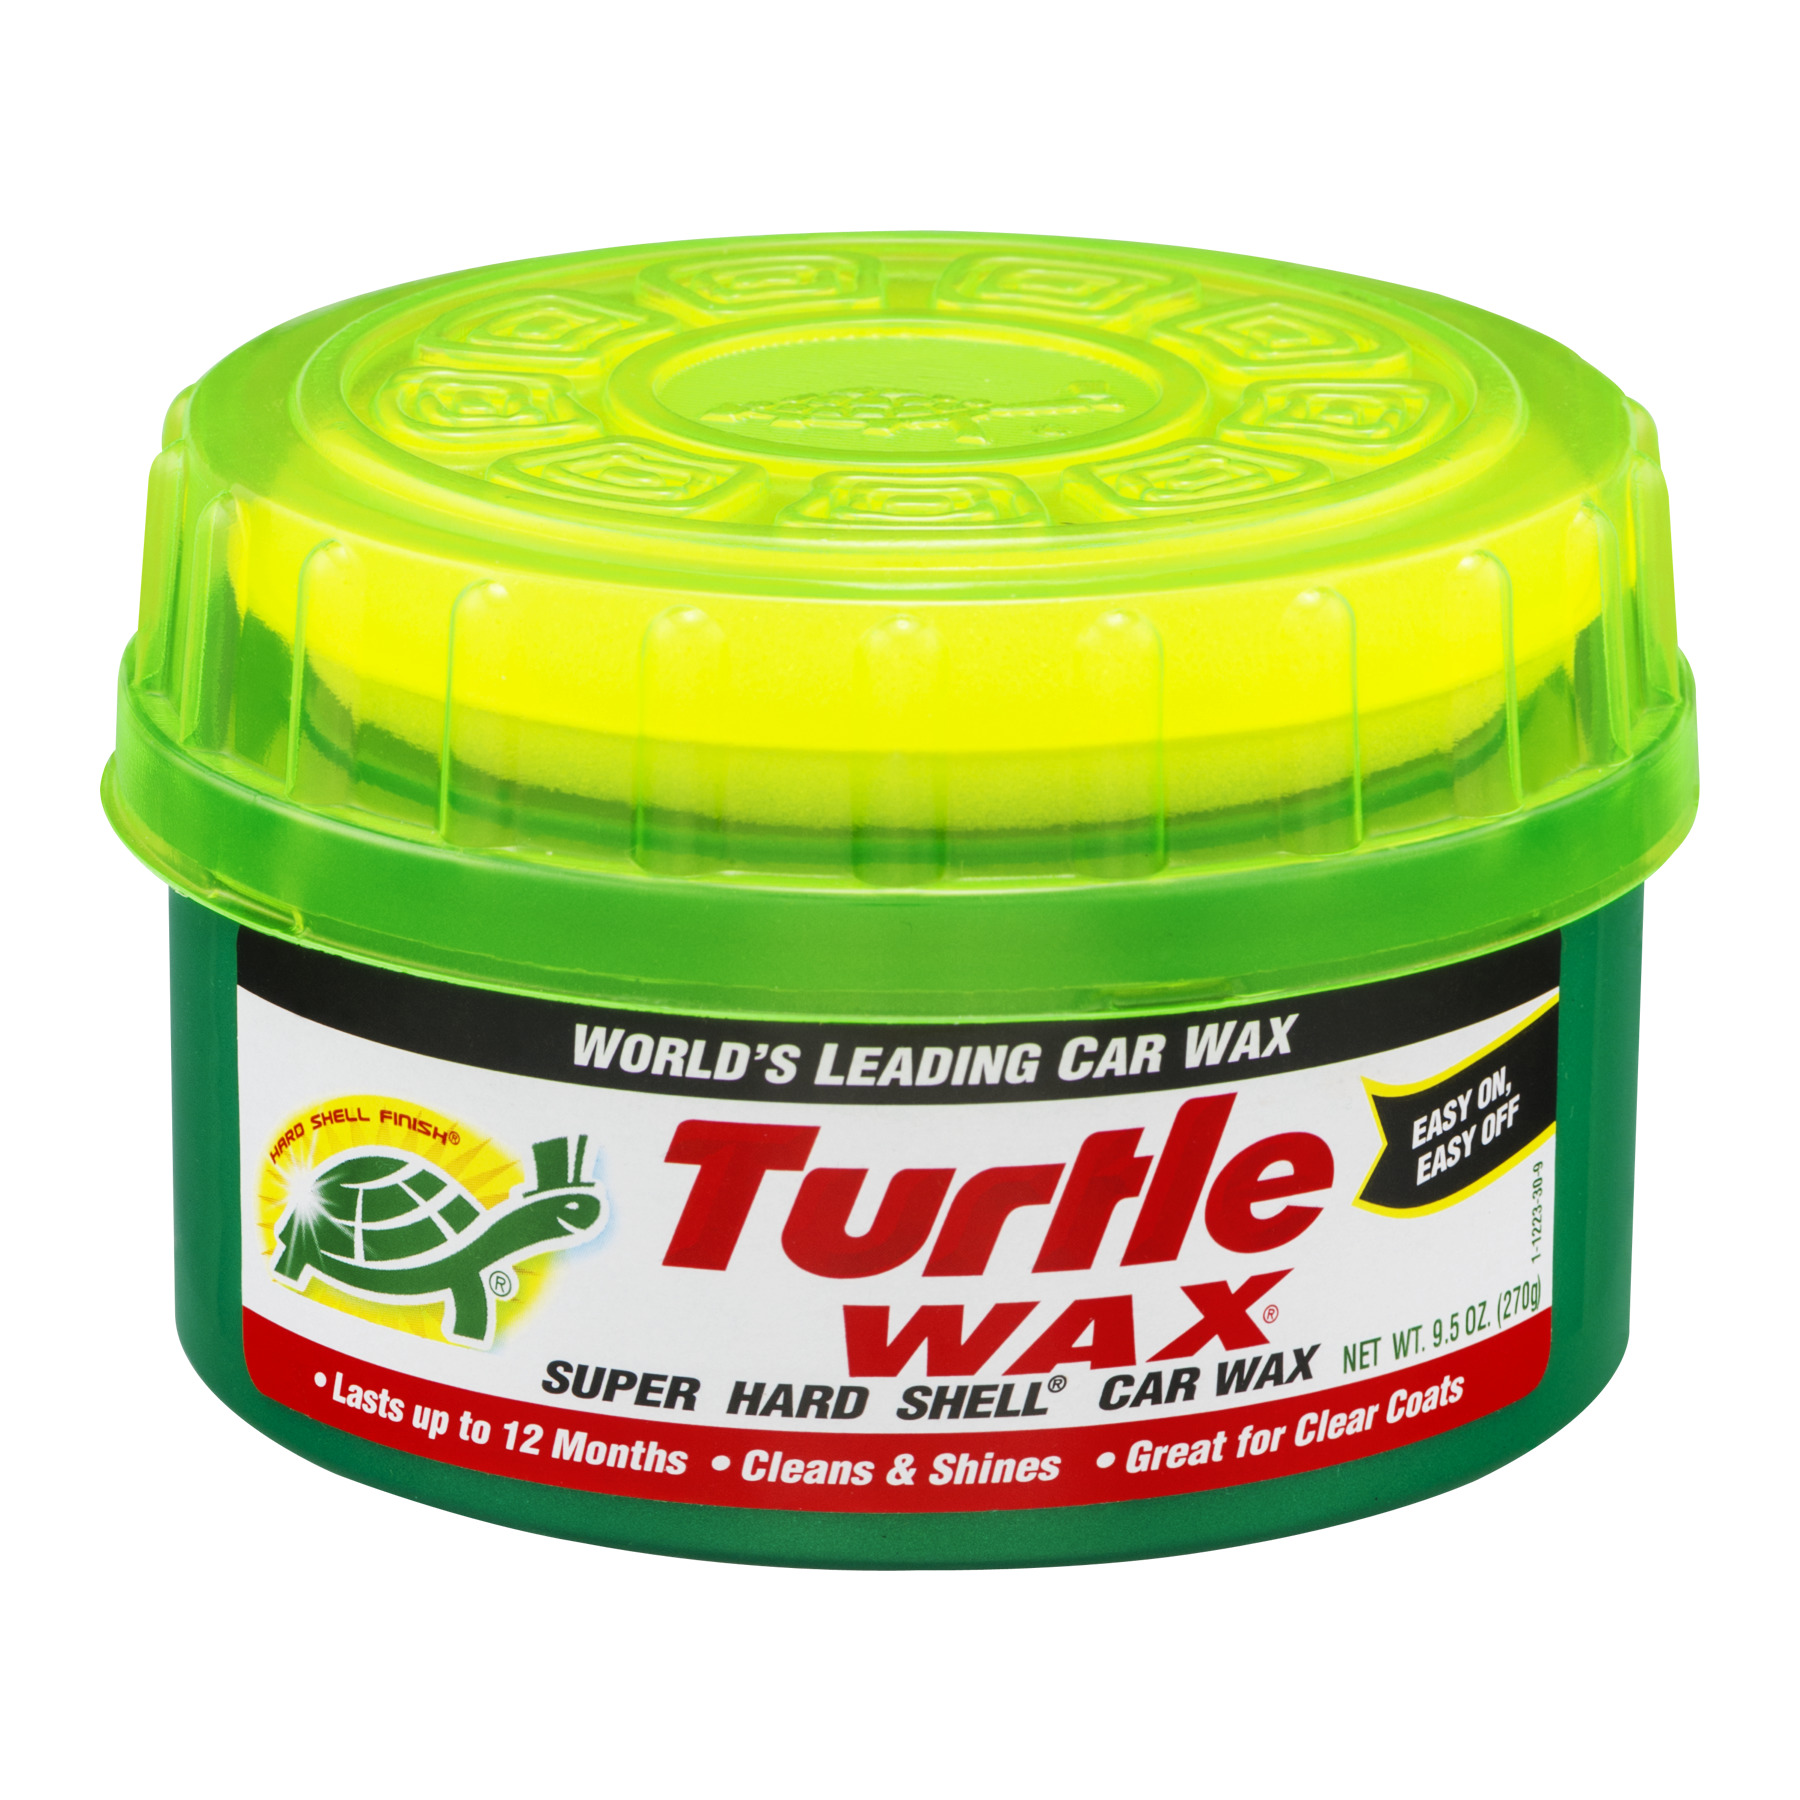 Turtle Wax Super Hard Shell Car Wax, 9.5 OZ